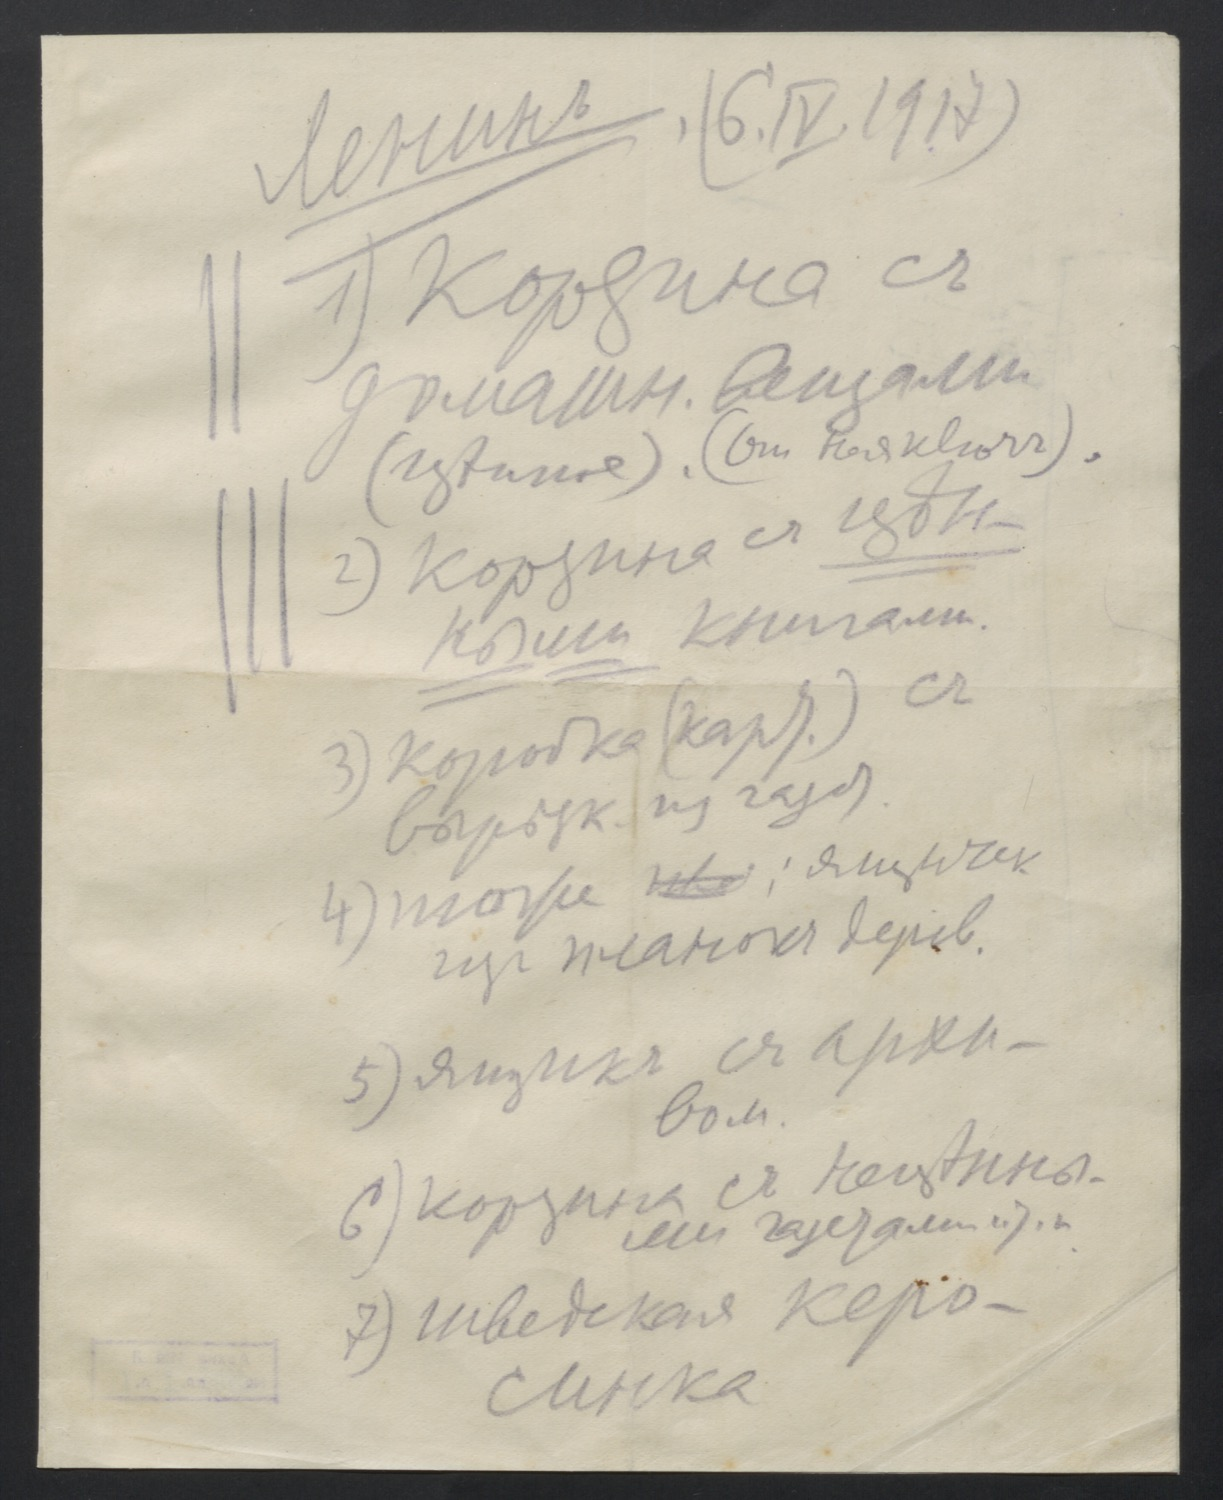 Inventory of personal belongings compiled by V.I. Lenin in Switzerland before leaving for Russia